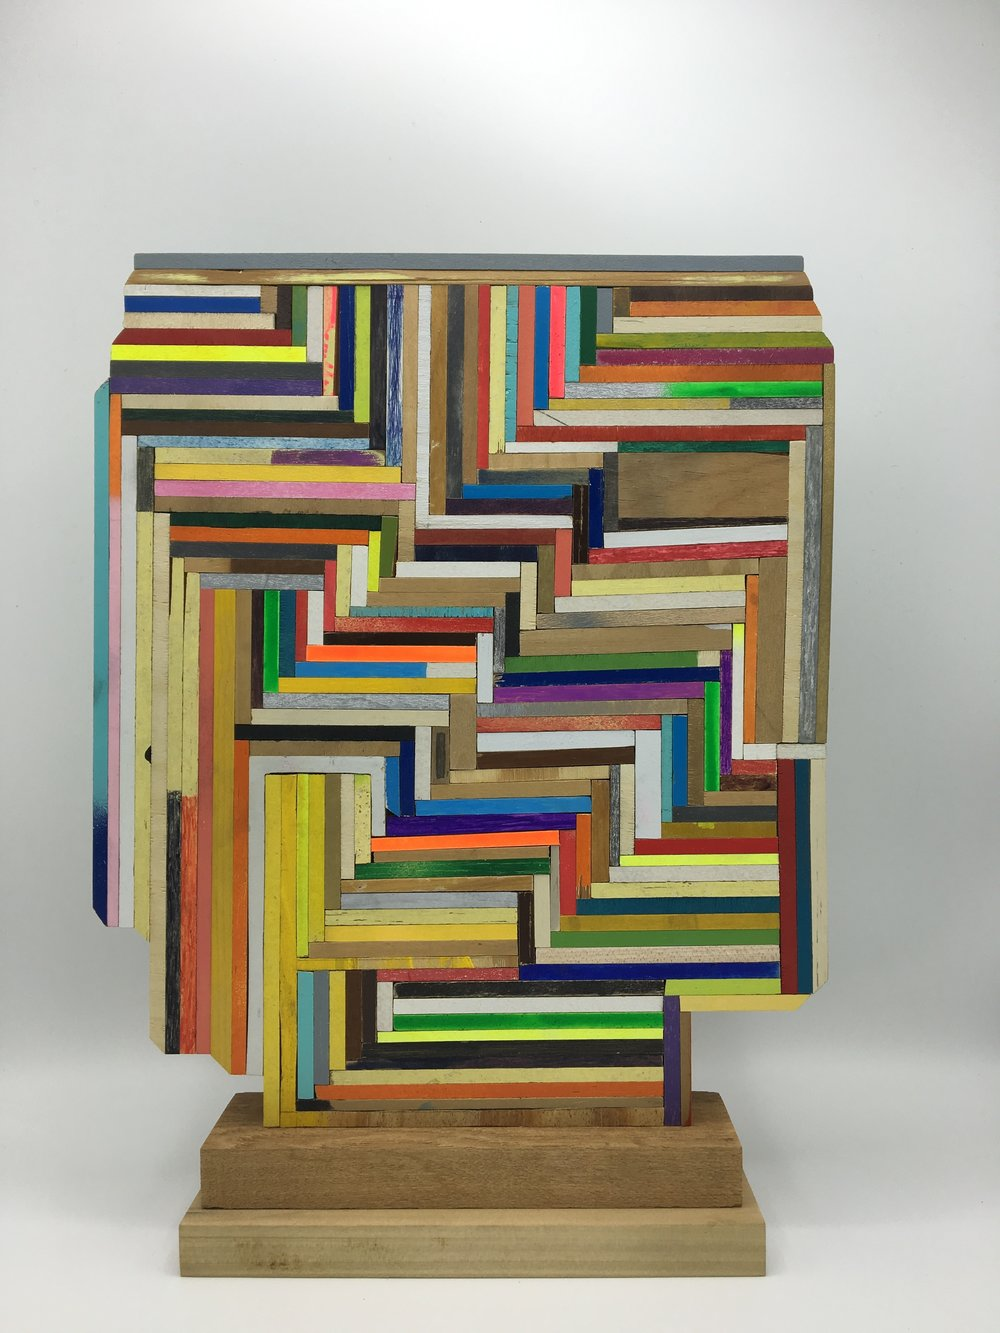 Monument , 2016  [private collection Madison, Wisconsin]  Wood, Paint, Colored Pencil, Glue   14 x 11 x 3 in.